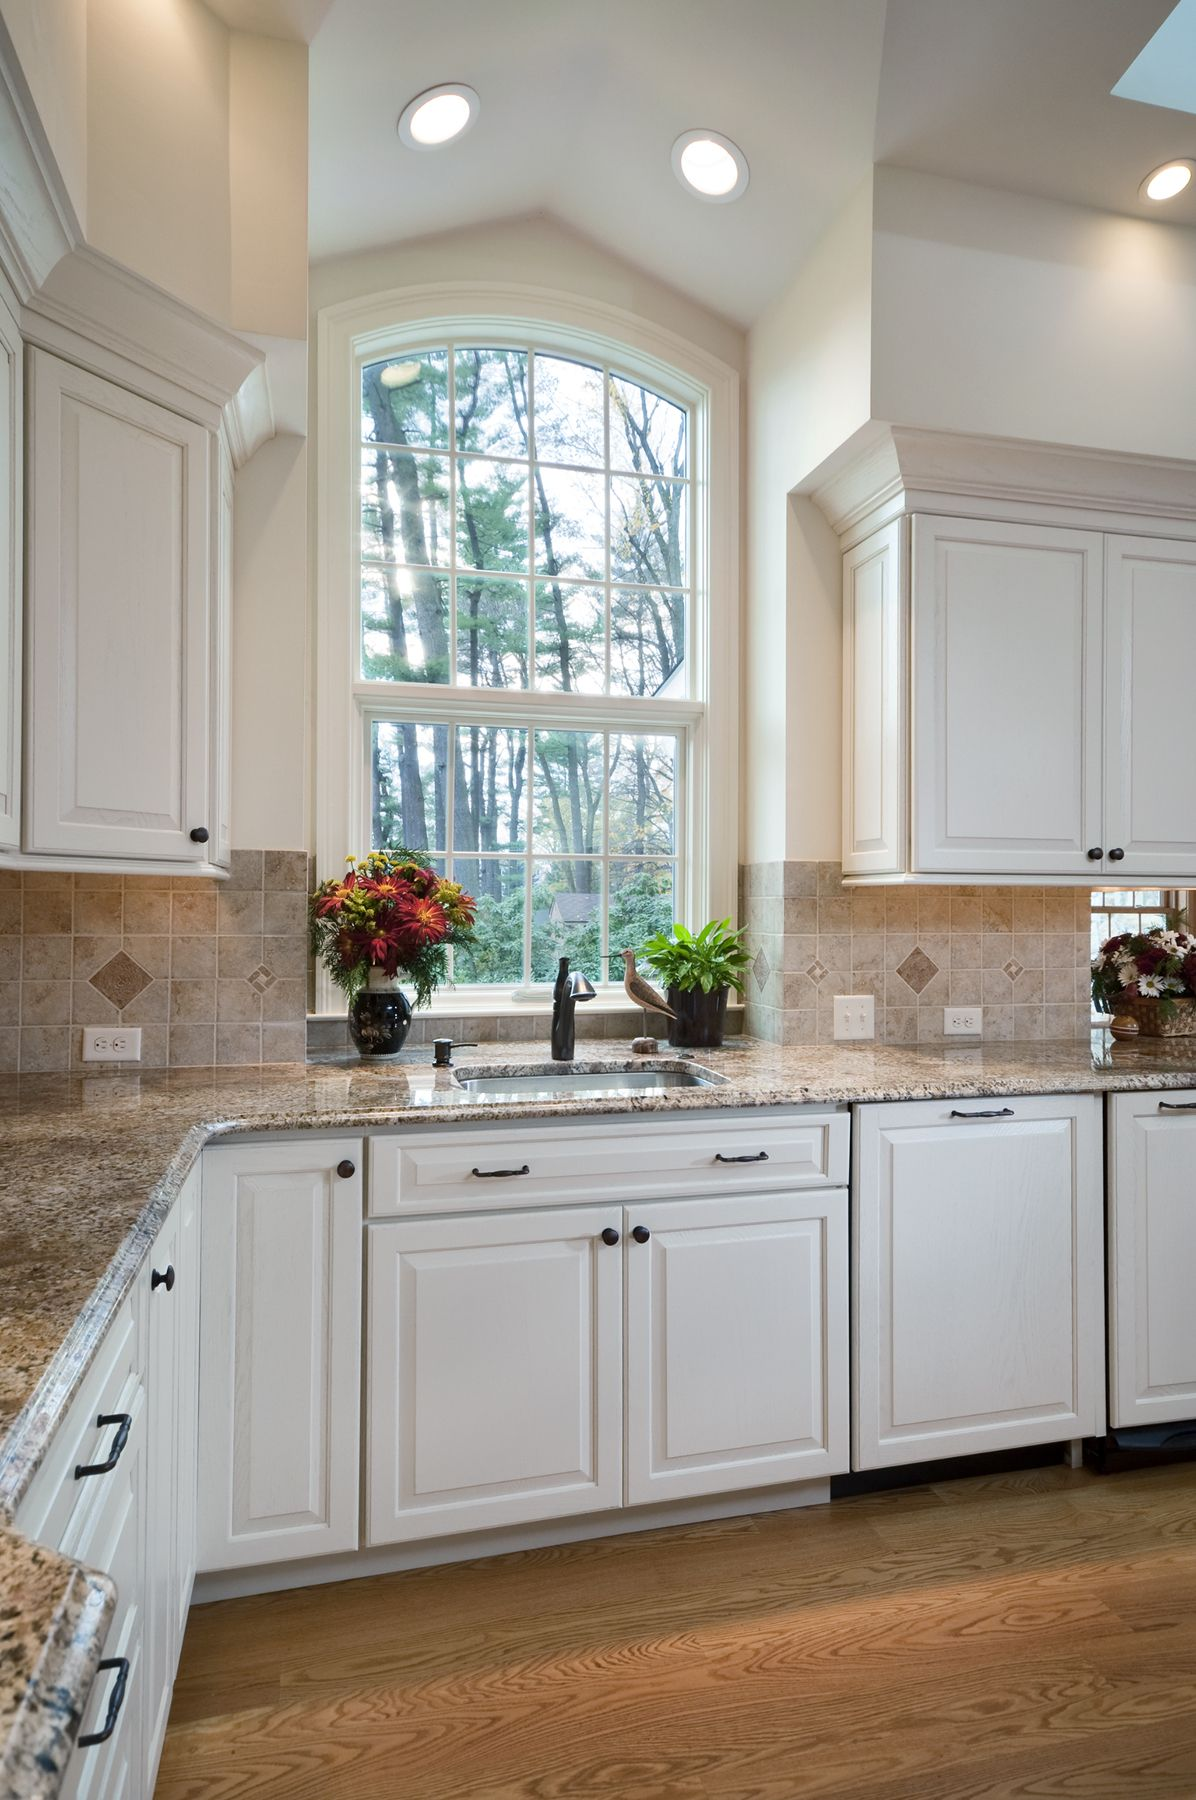 Attractive Kitchen Windows | Sink And Work Area Of Renovated Kitchen By Betz Homes